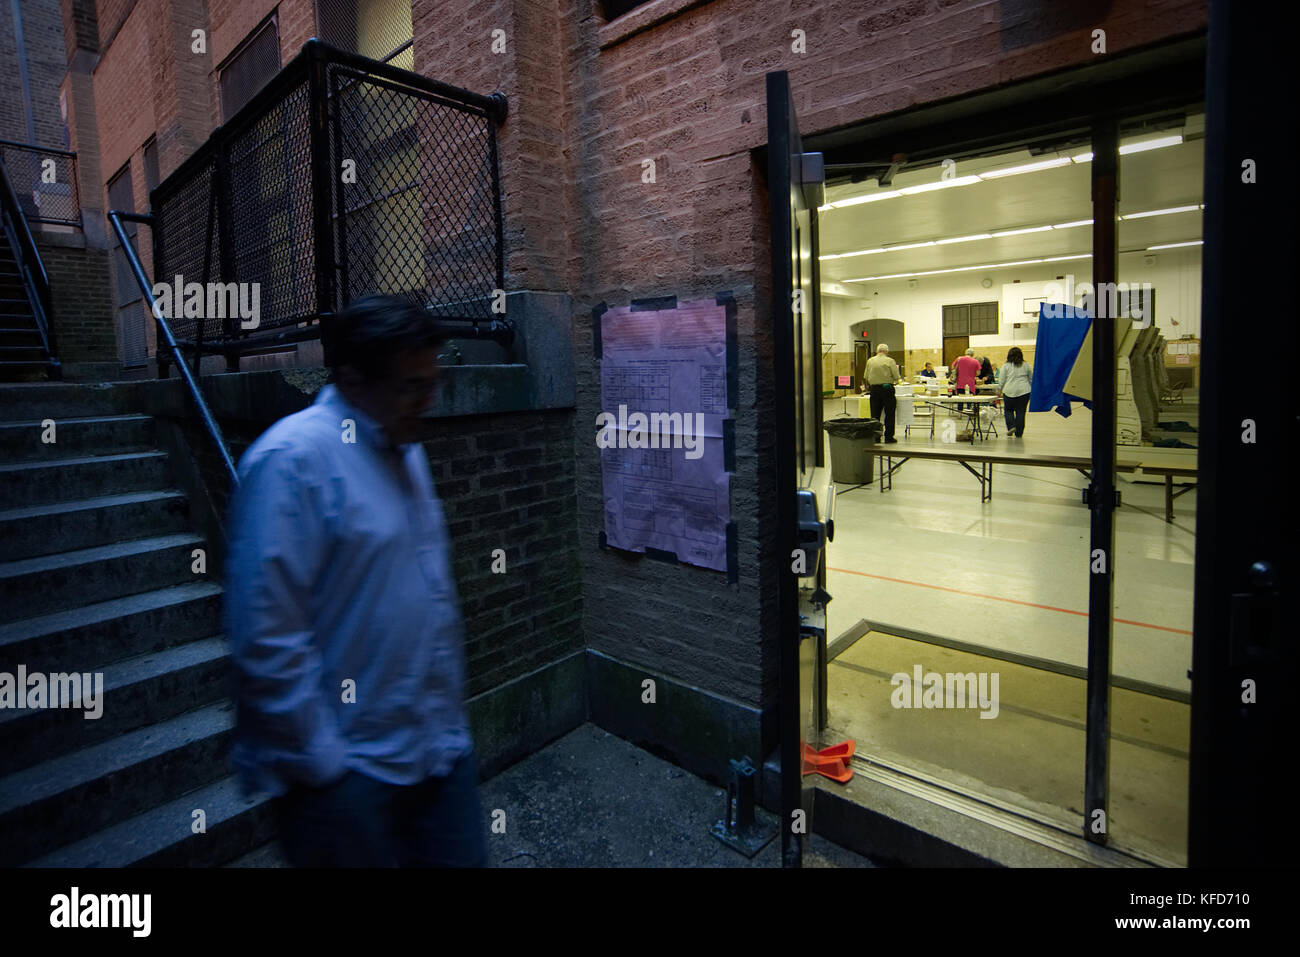 With minutes till polls close on Election Day a voter walks past open doors at a polling station, located in the - Stock Image